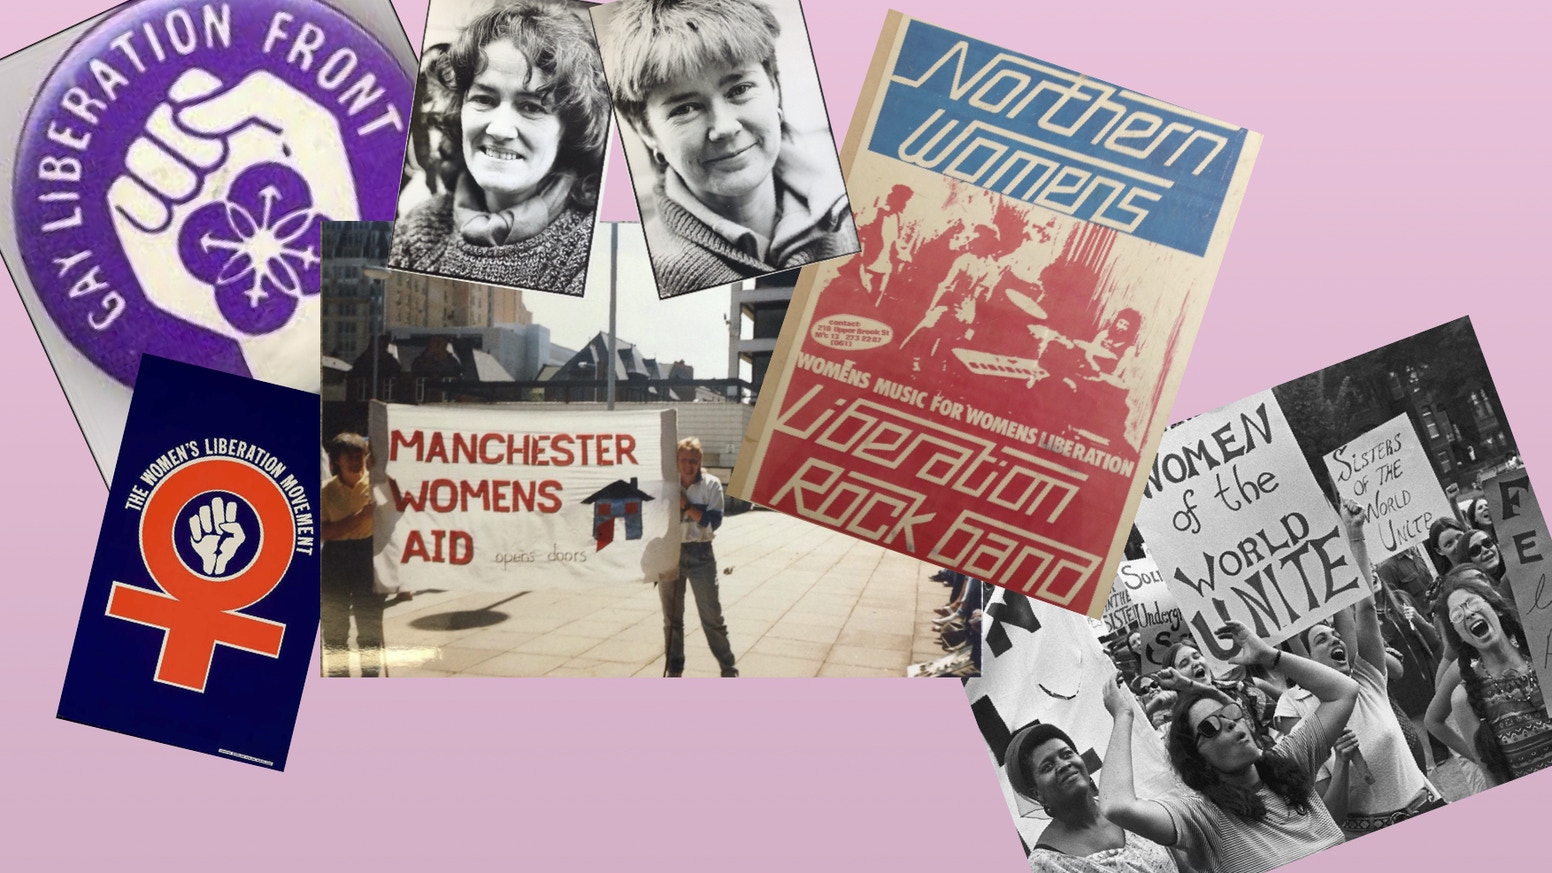 A short documentary charting the last 50 years of Manchester's LGBTQ history through the personal story of two incredible women.